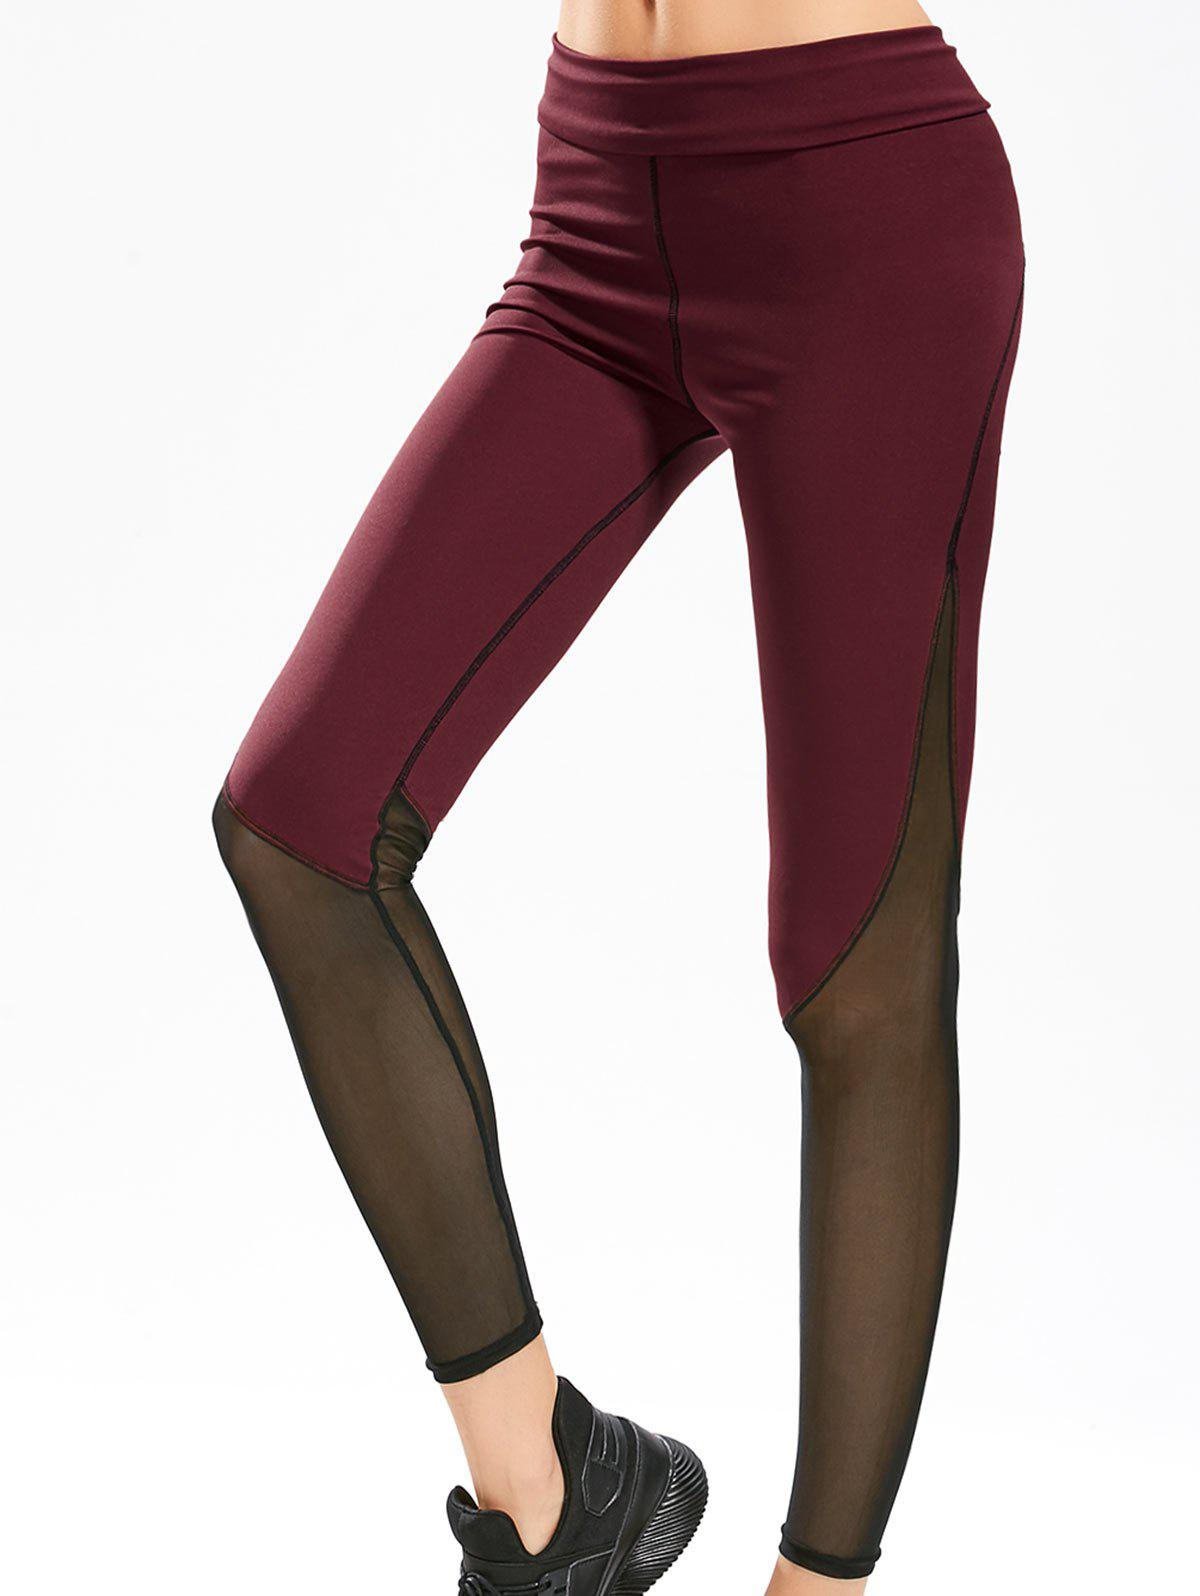 Sheer Mesh Panel Gym Leggings - WINE RED M